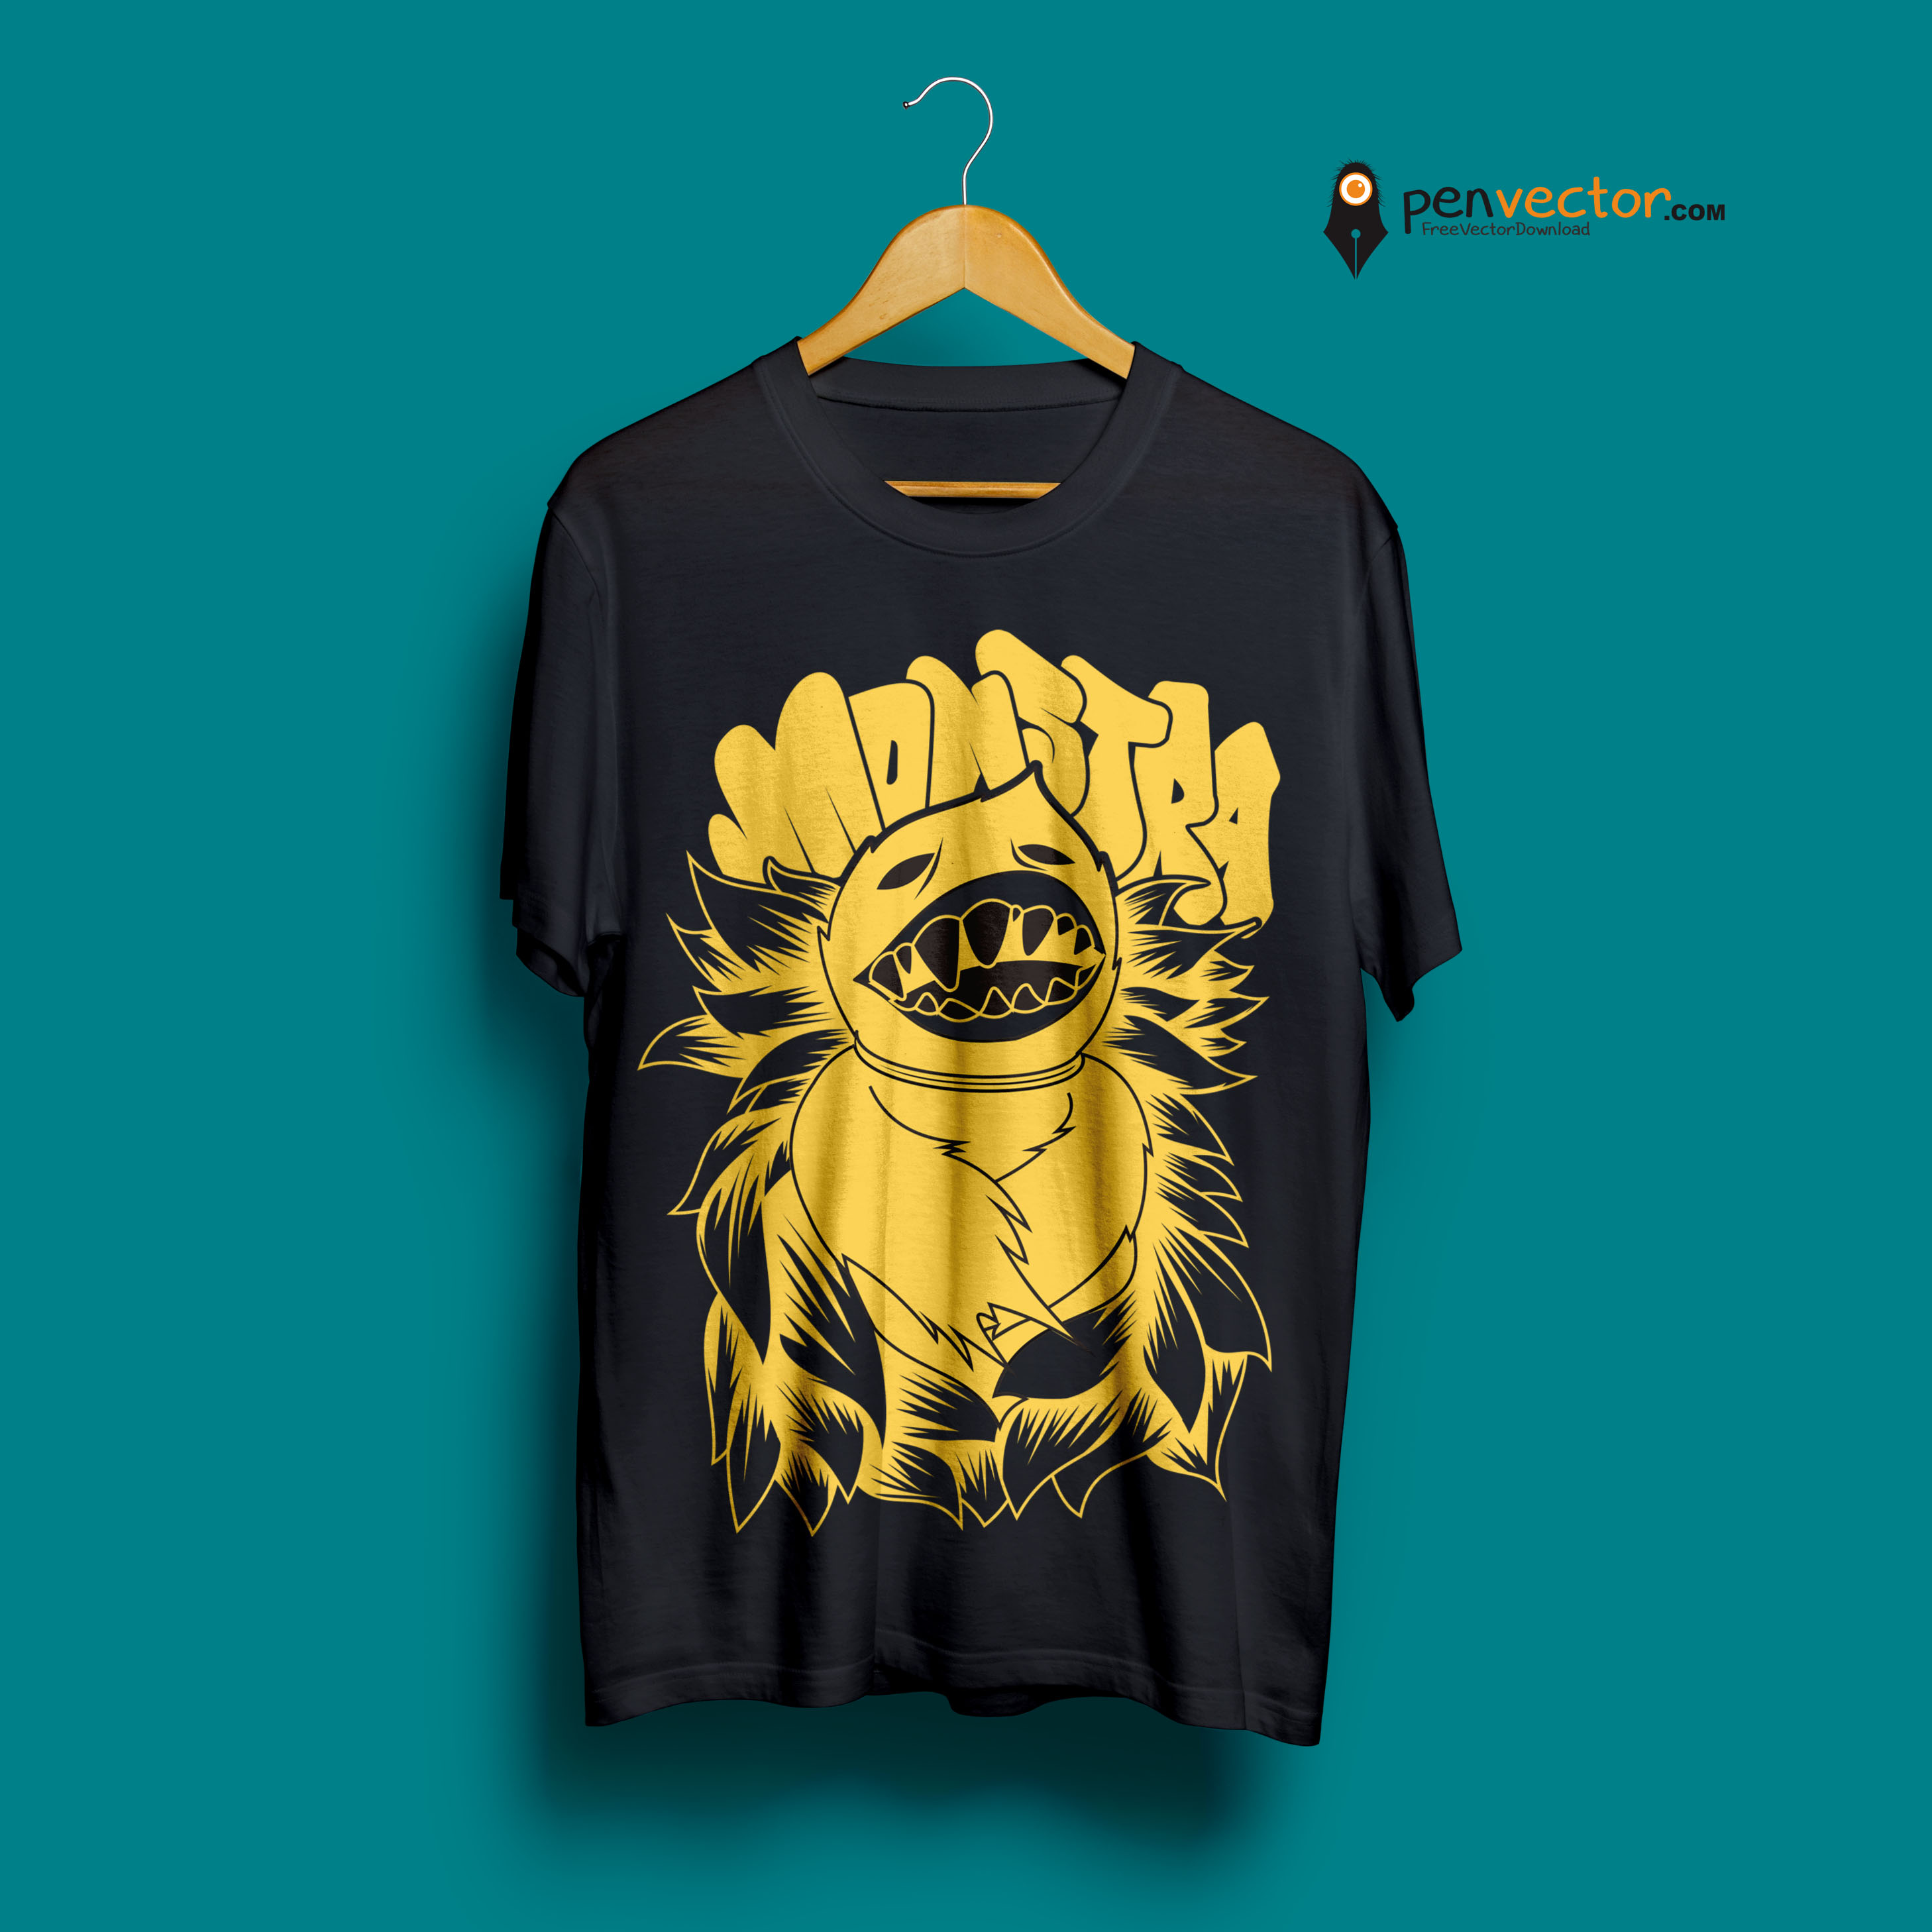 2916x2916 Monstra T Shirt Design Vector Free Vector